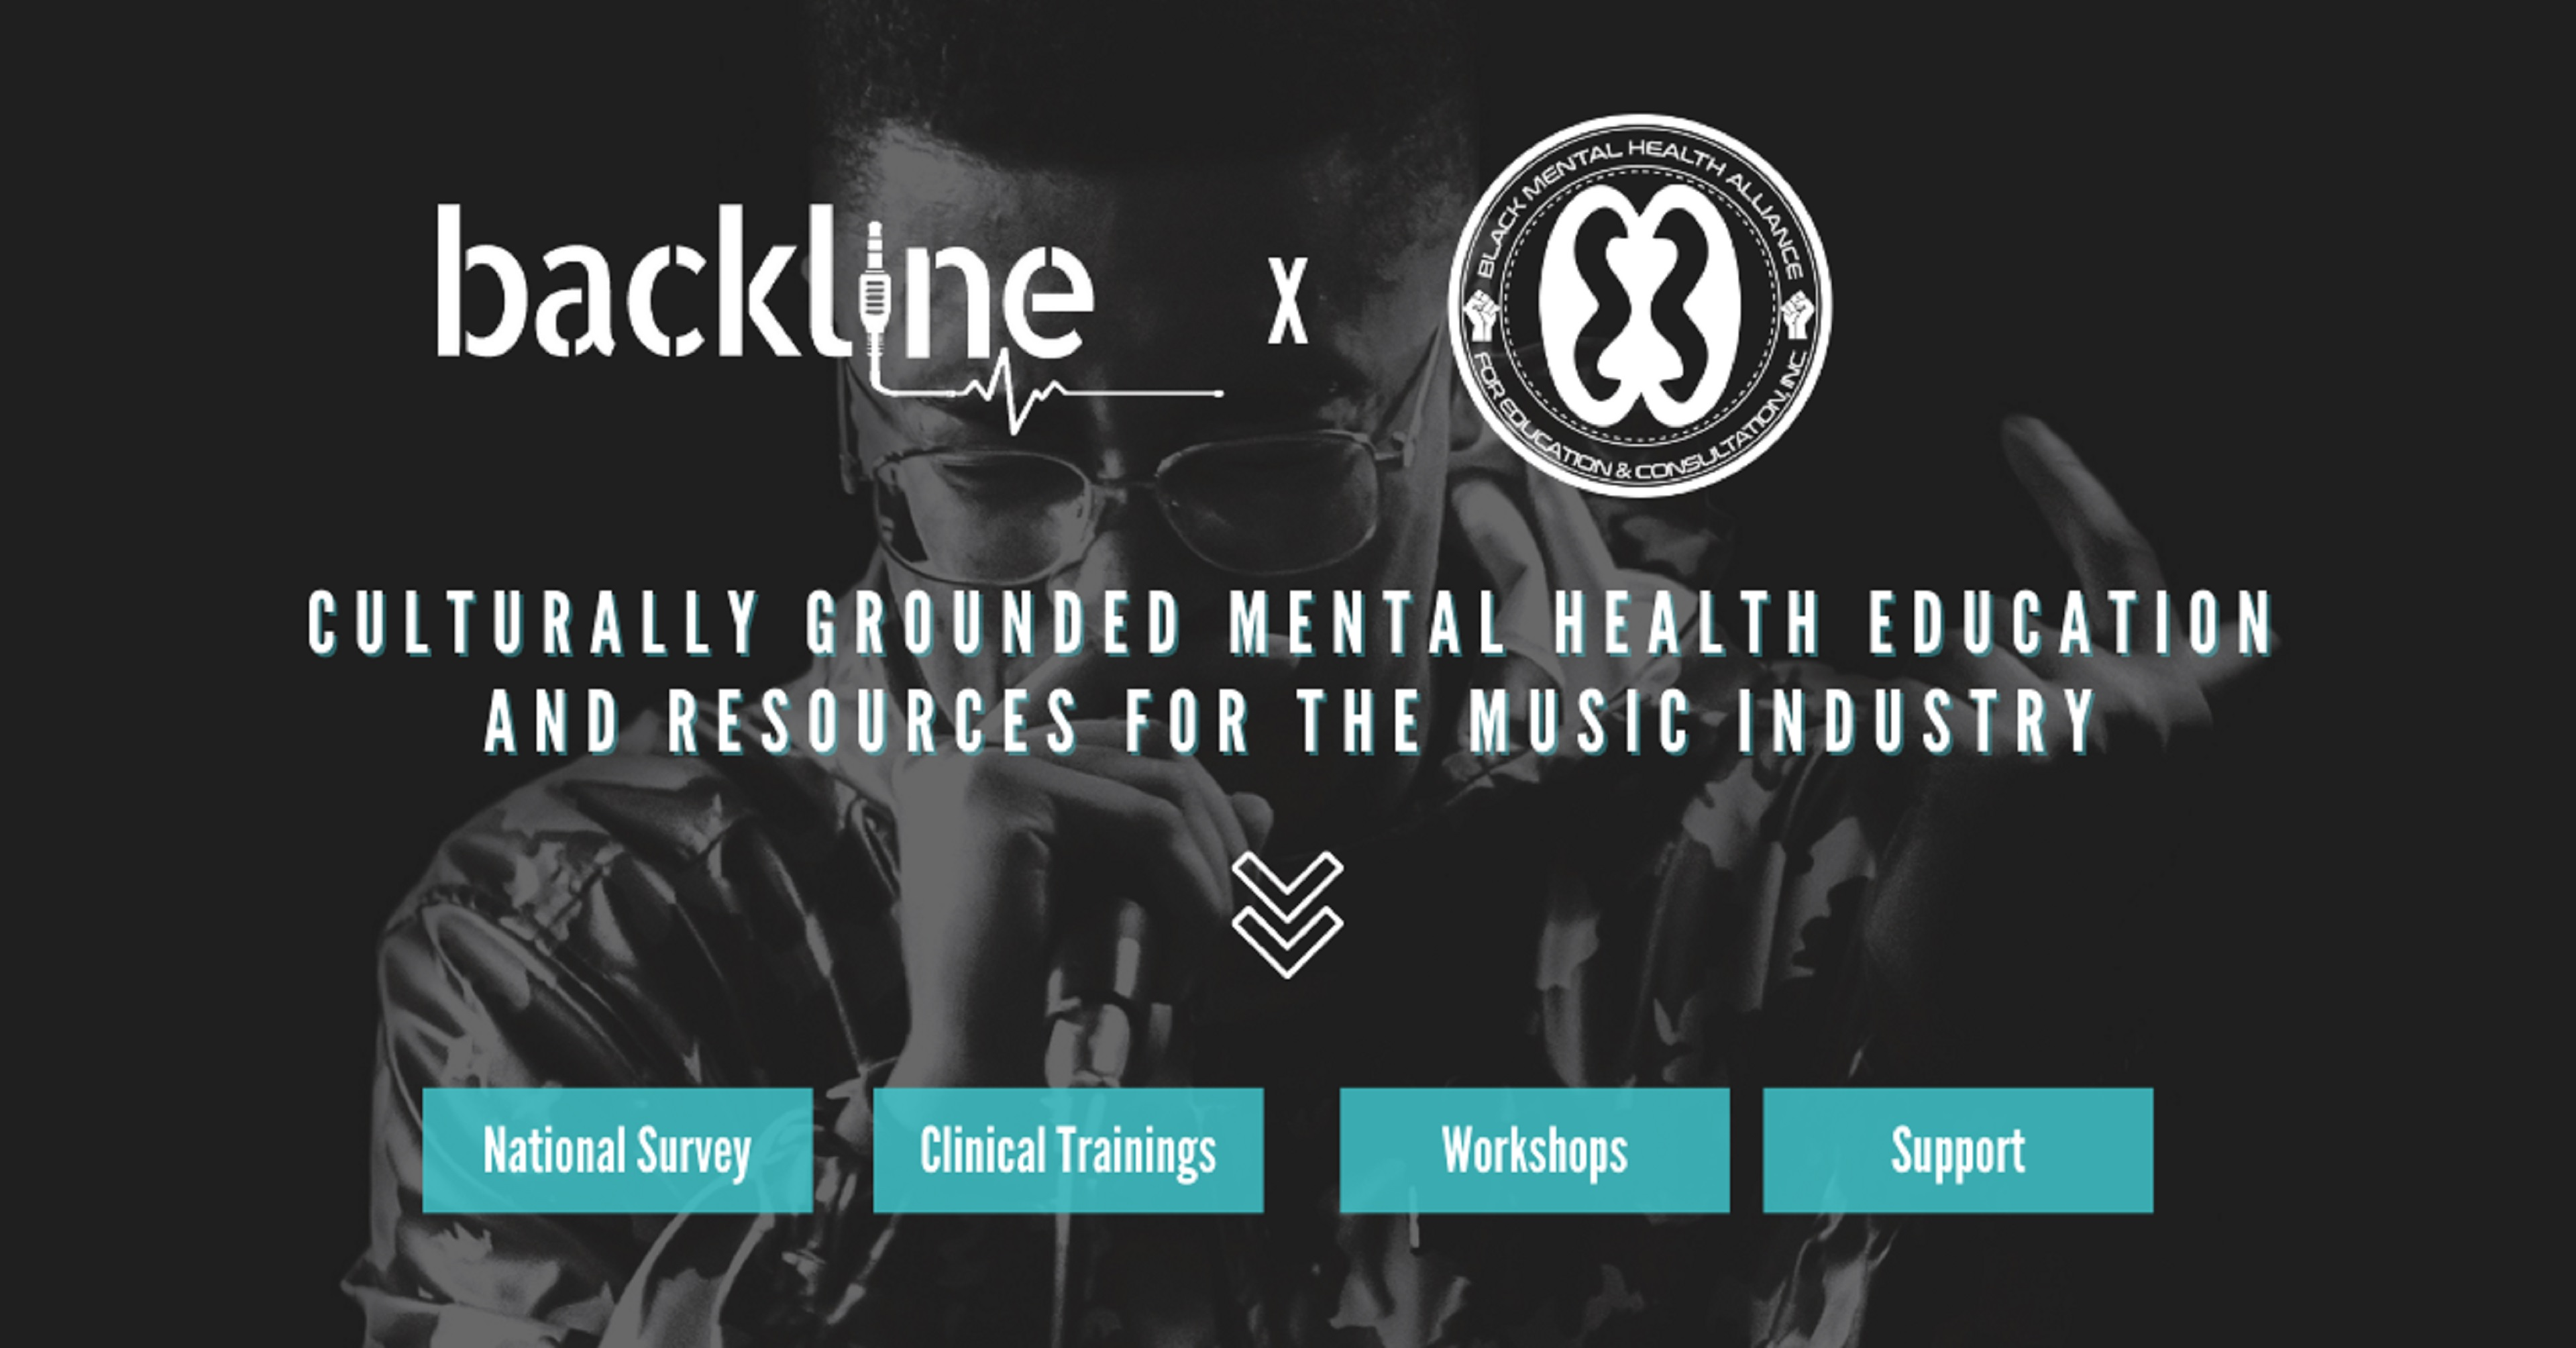 Backline and Black Mental Health Alliance announce partnership and offer resources to serve the music industry